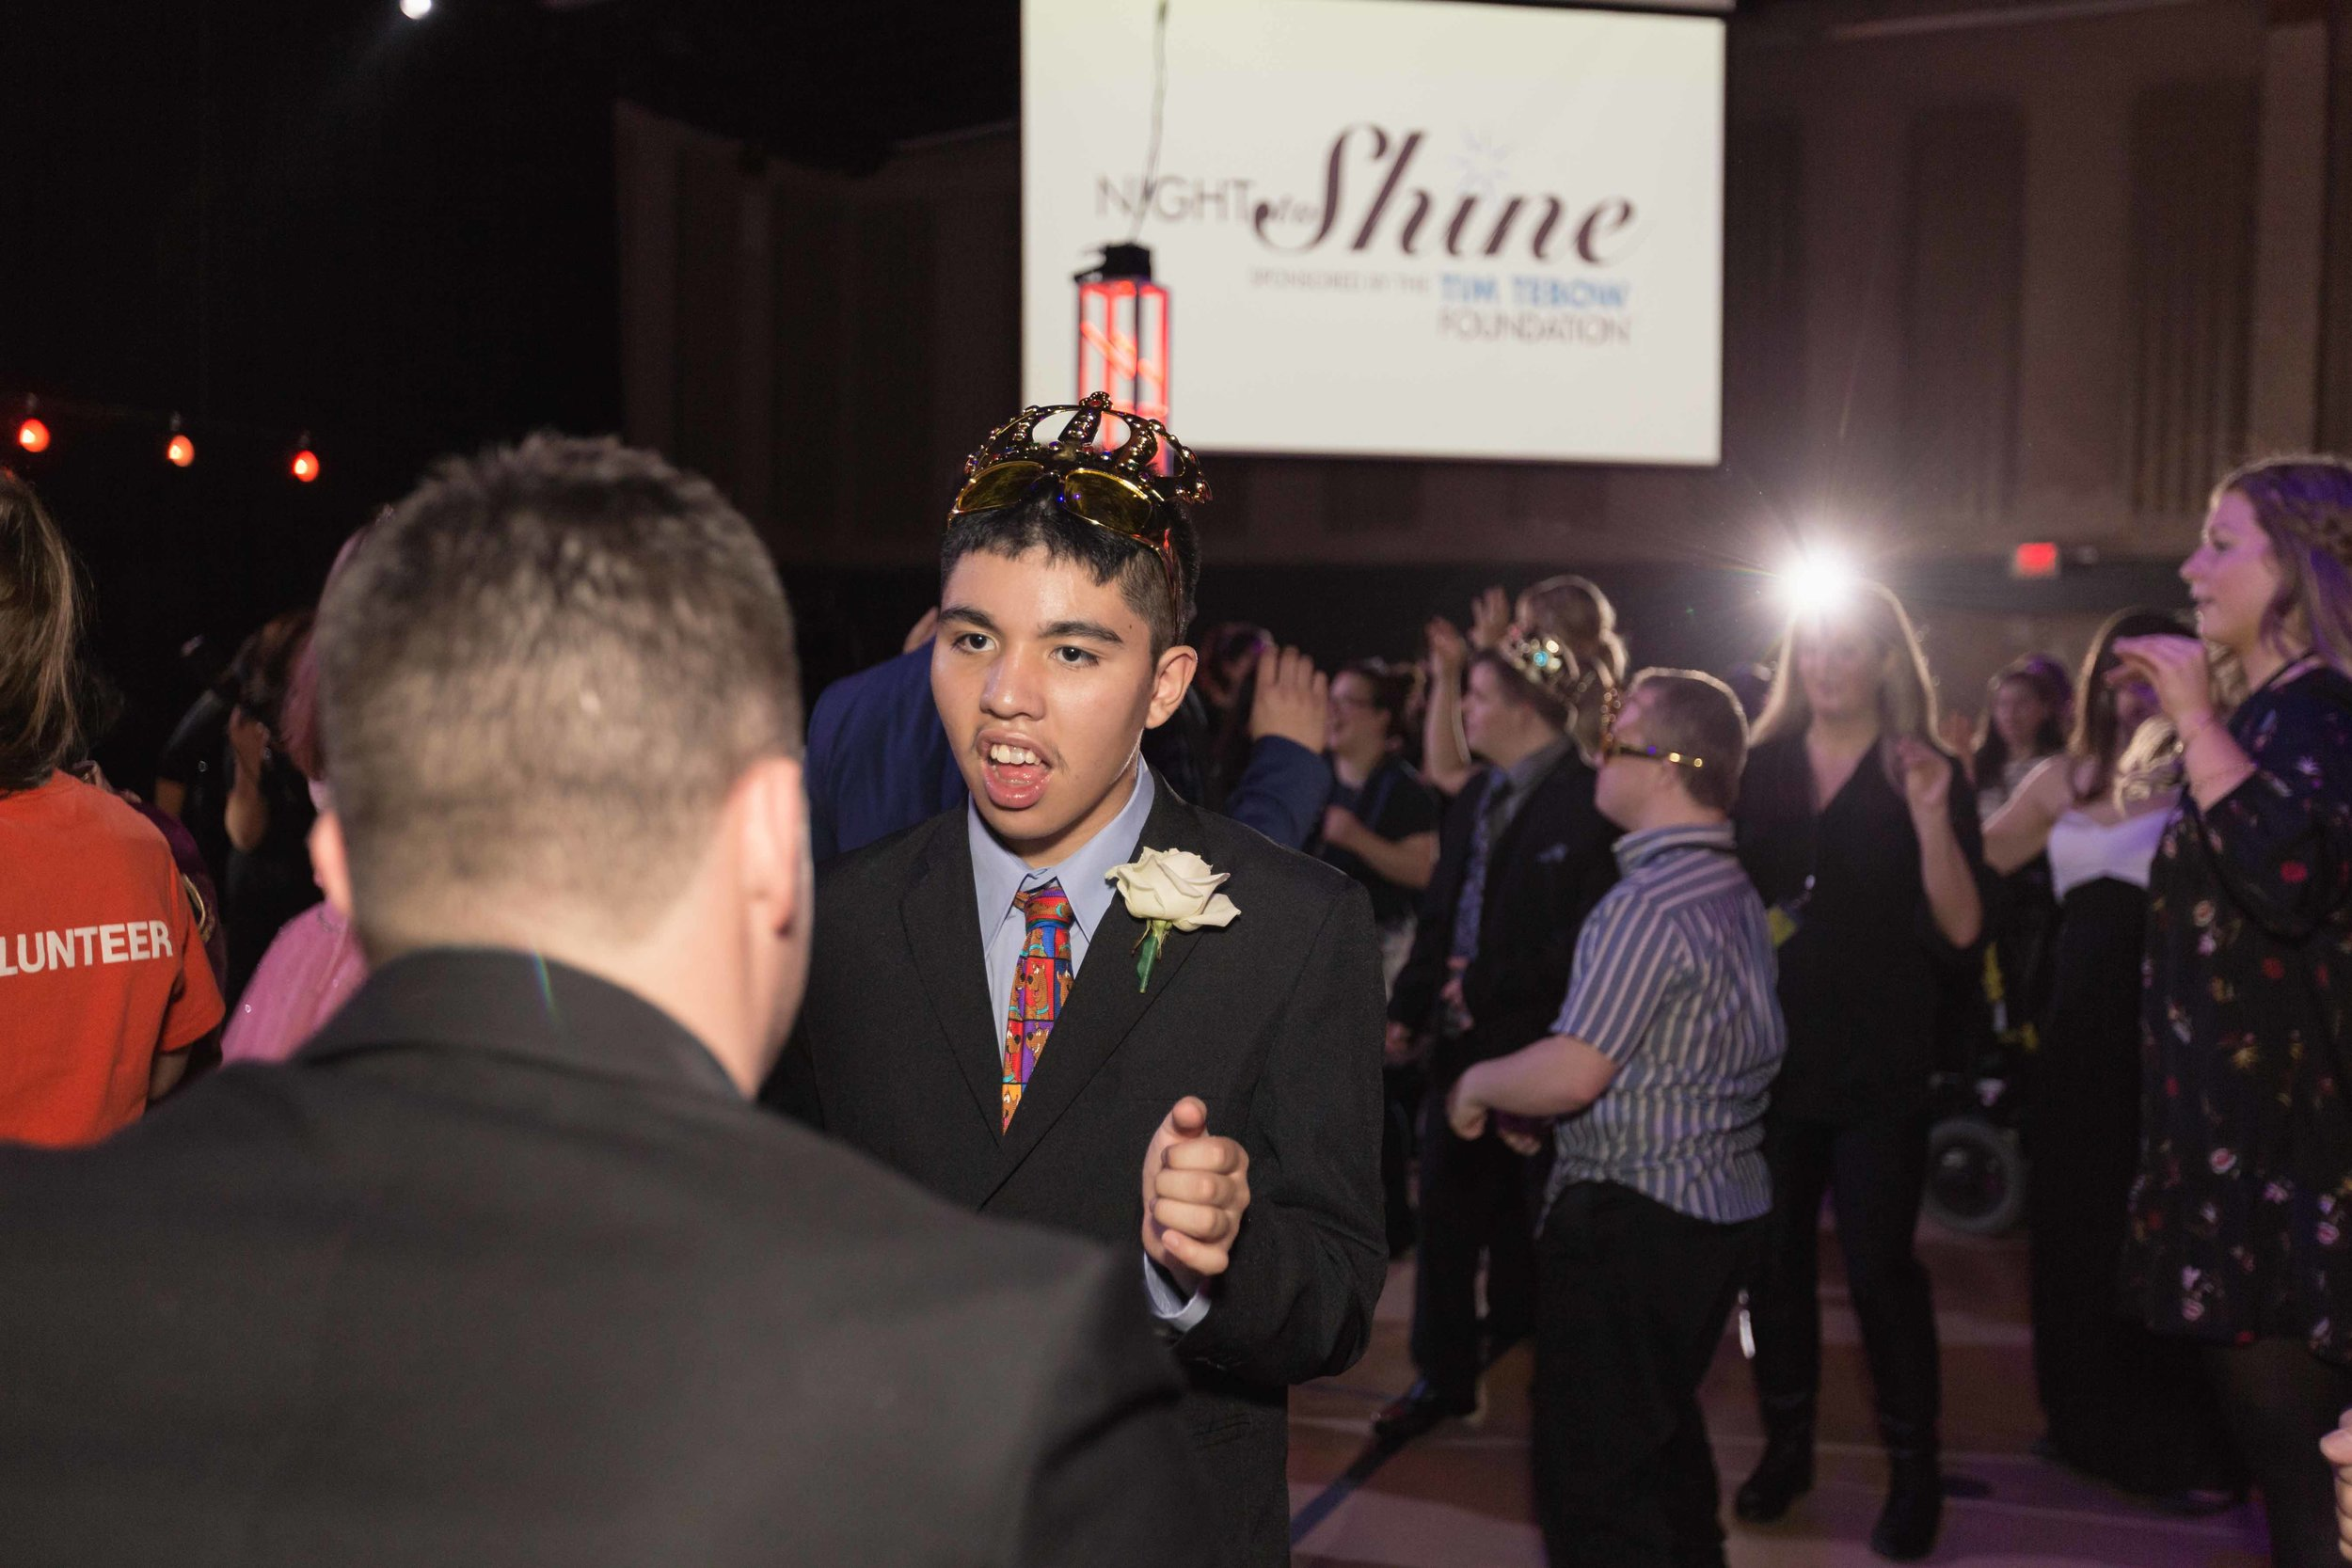 InBetweenDreamsWedding_NightToShine2018_HorizonChurch (427 of 514).jpg